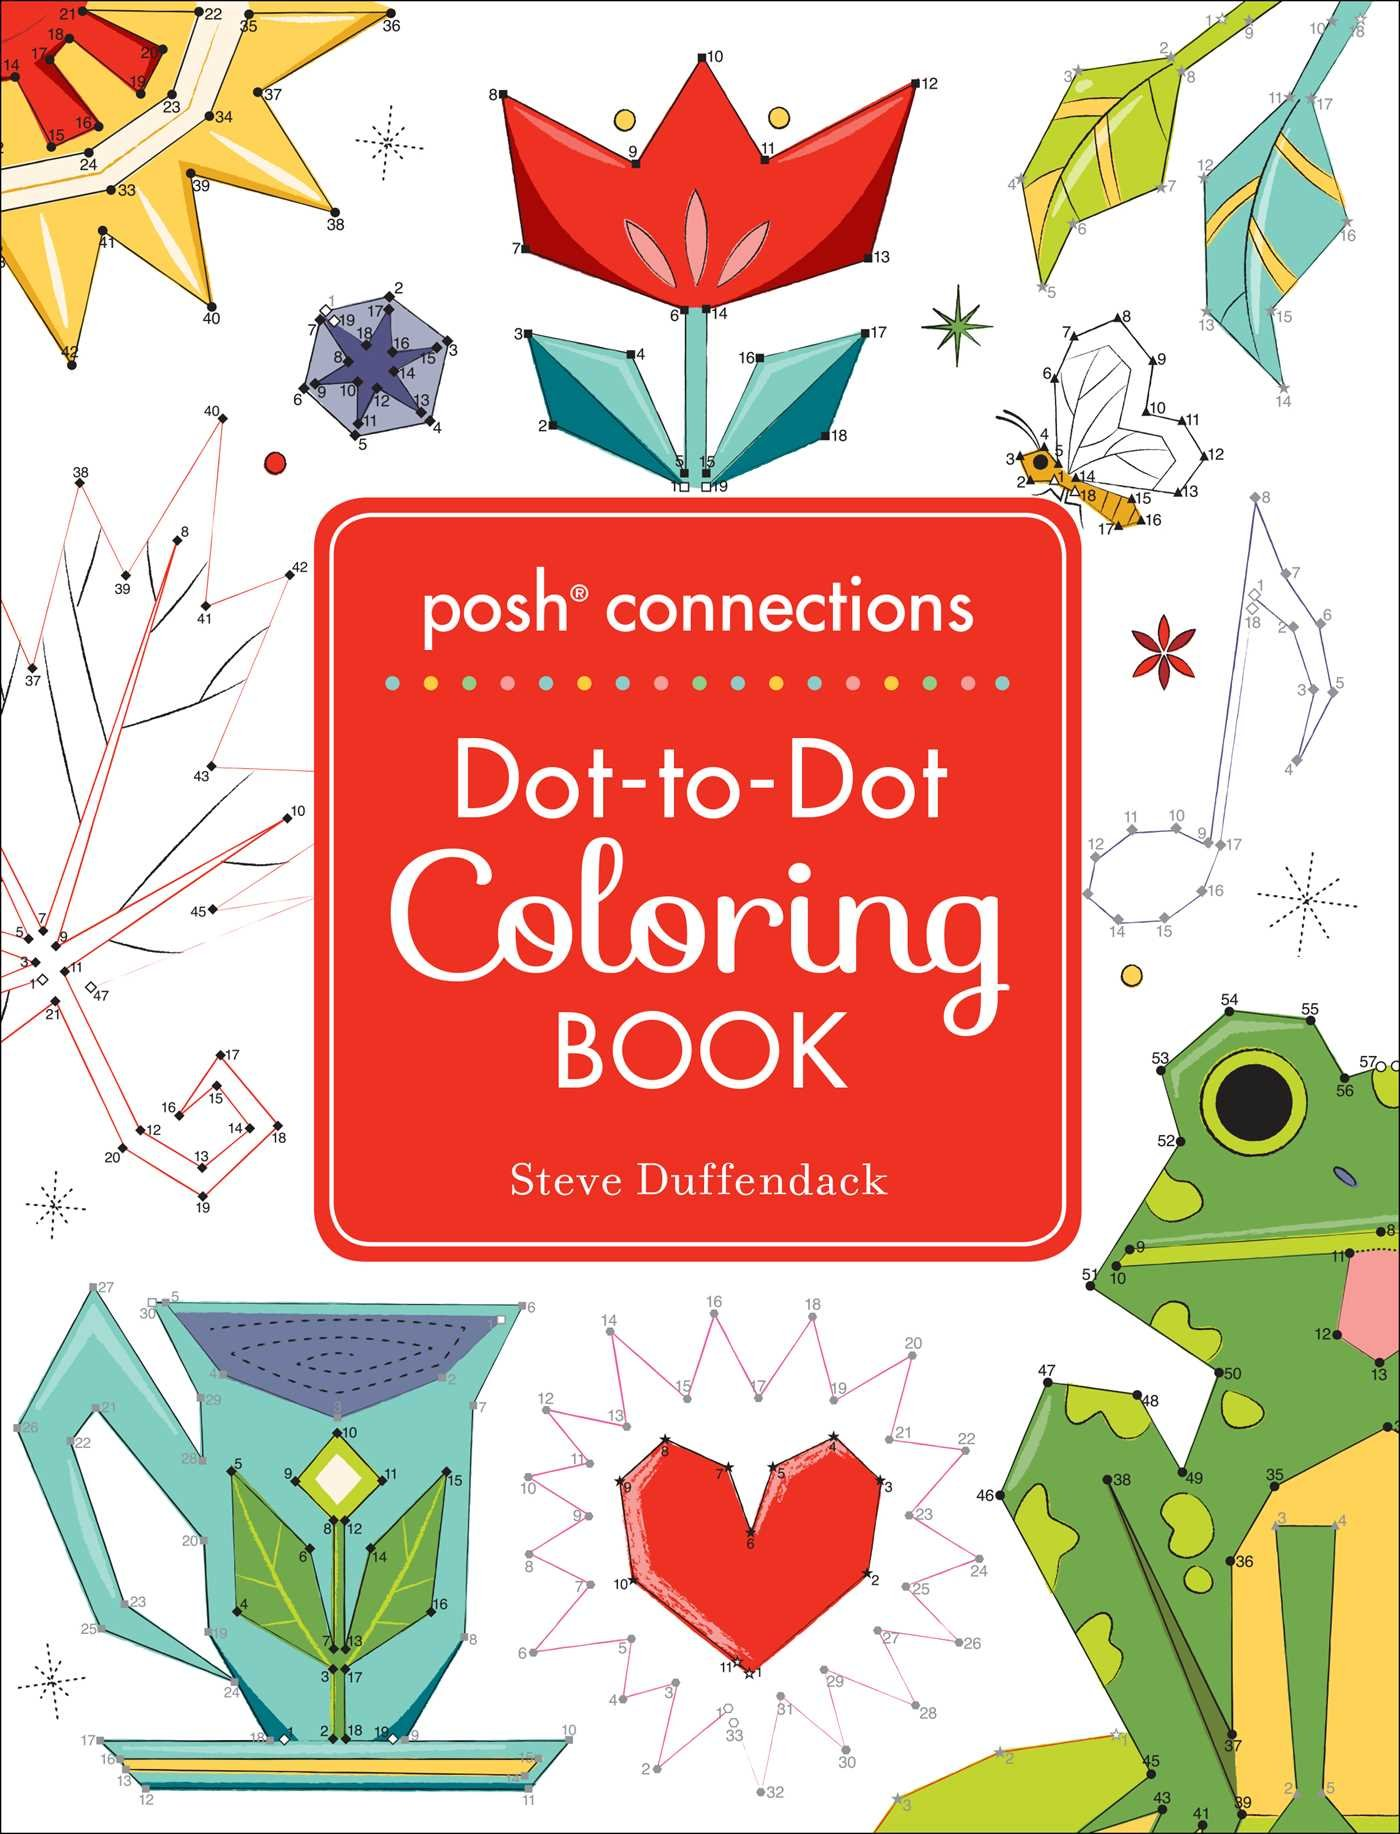 Download Posh Connections A Dot-to-Dot Coloring Book for Adults pdf epub